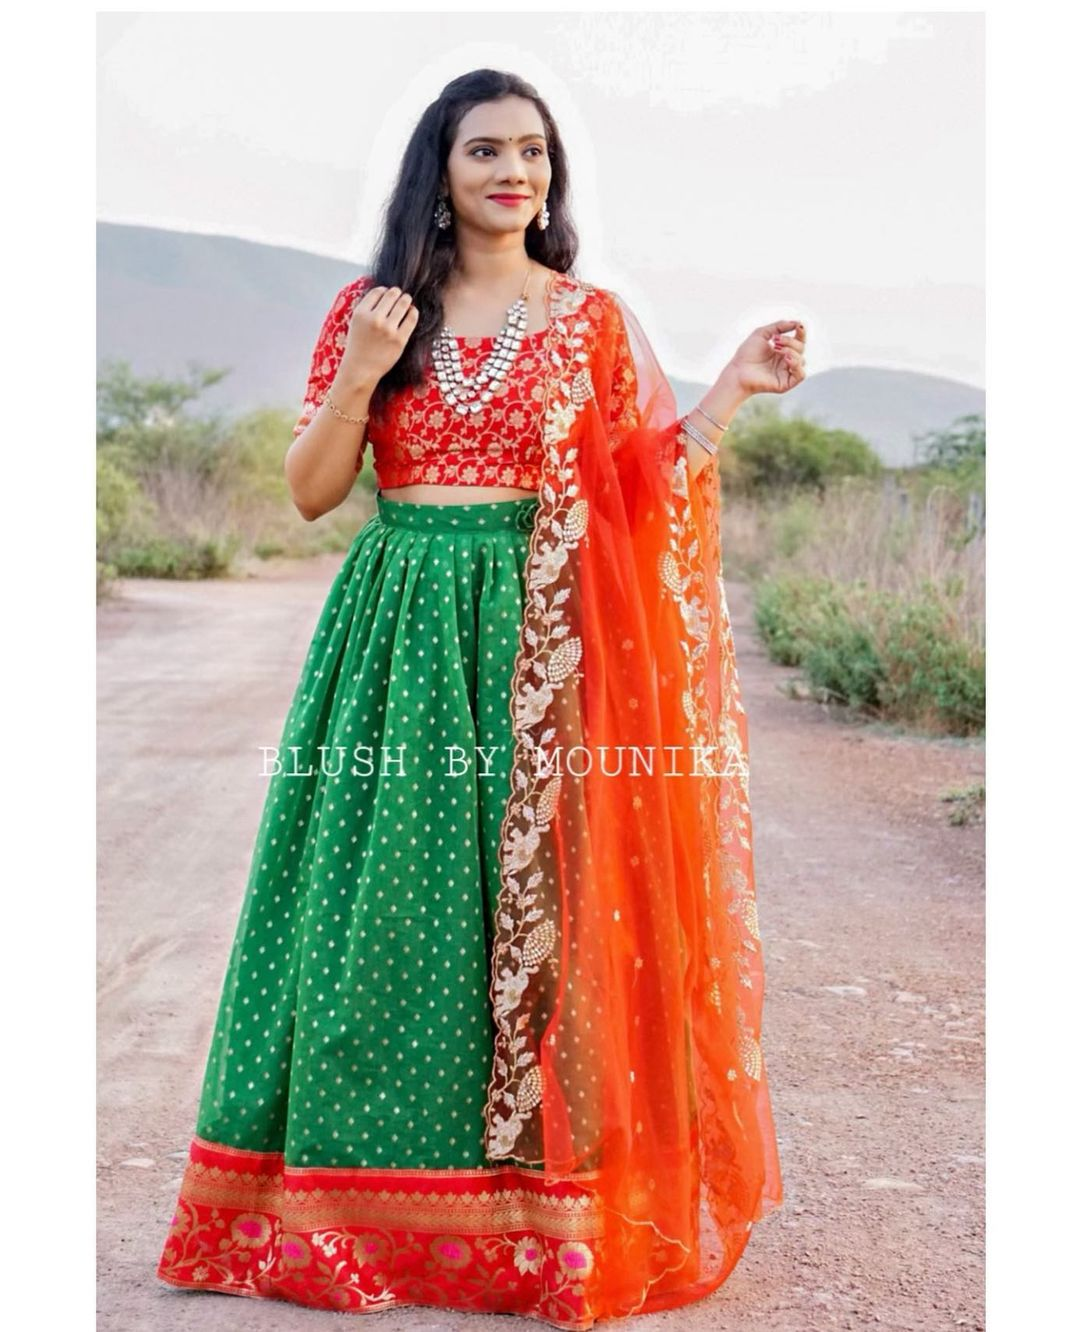 Pruple Chanderi. Price : ₹7200/- green Chanderi Lehenga with Banaras Border and Banaras Brocade Crop top paired with net cut work dupatta.  Can Can attached to the flare and finished with double lining. 2021-05-30